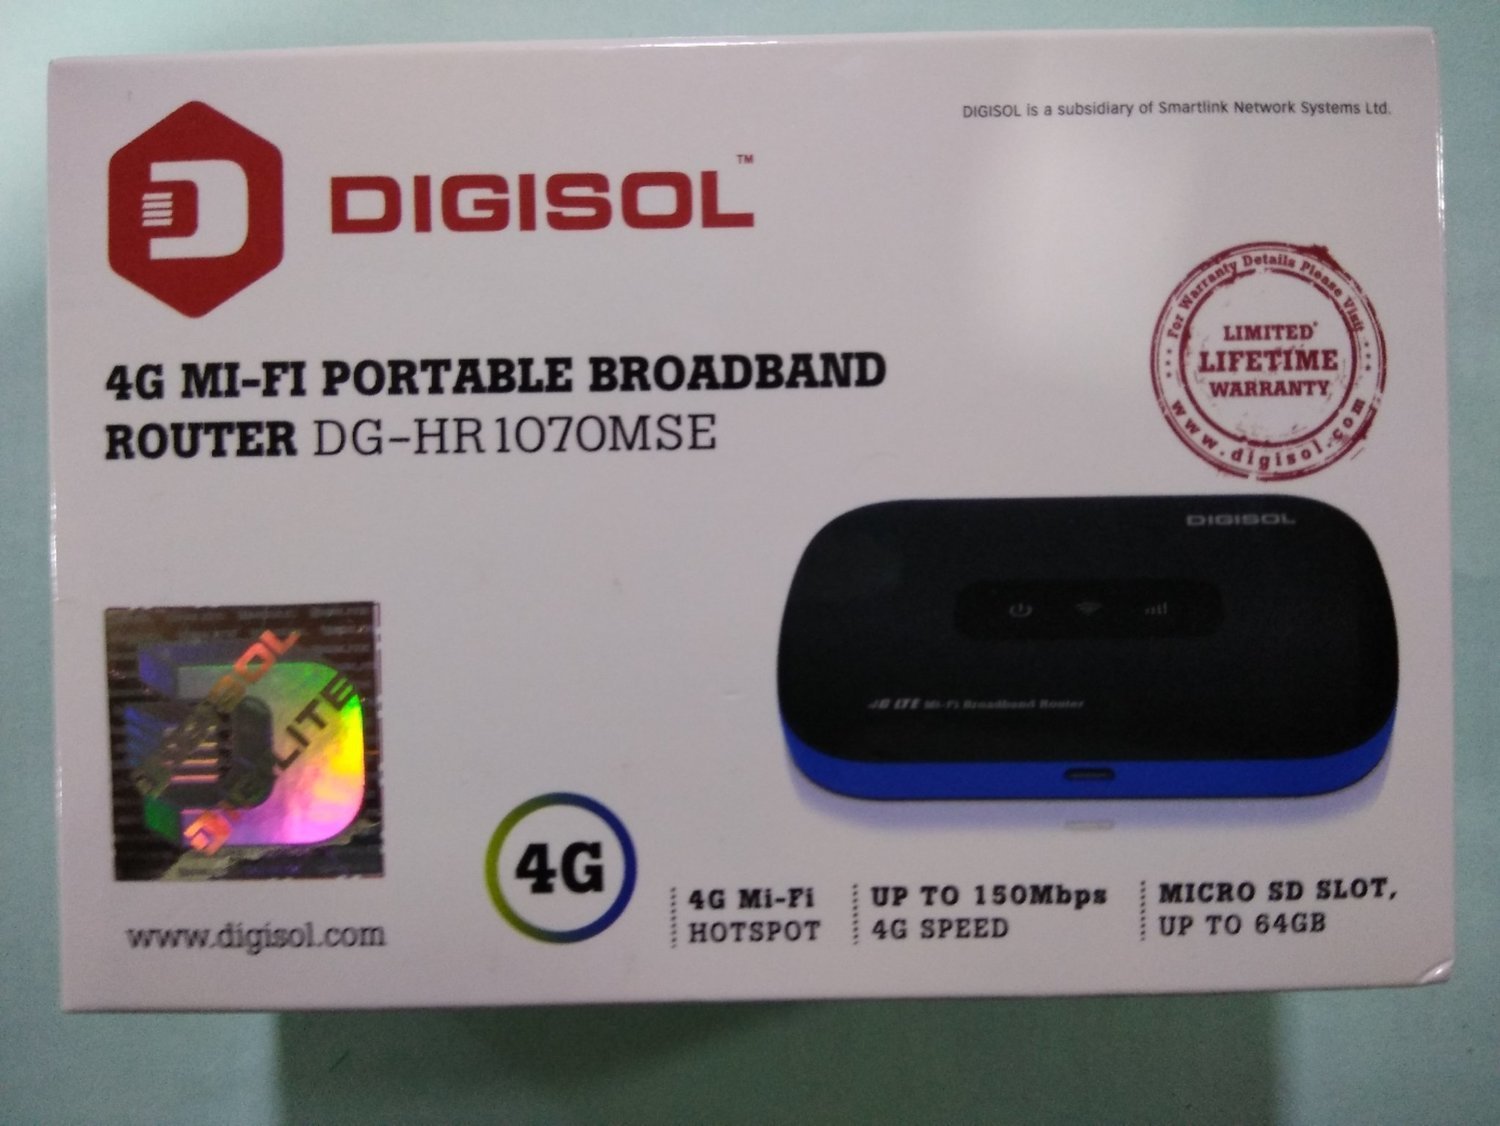 Digisol DG-HR1070MSE 4G Mi-Fi Portable Broadband Router, Rs 2828